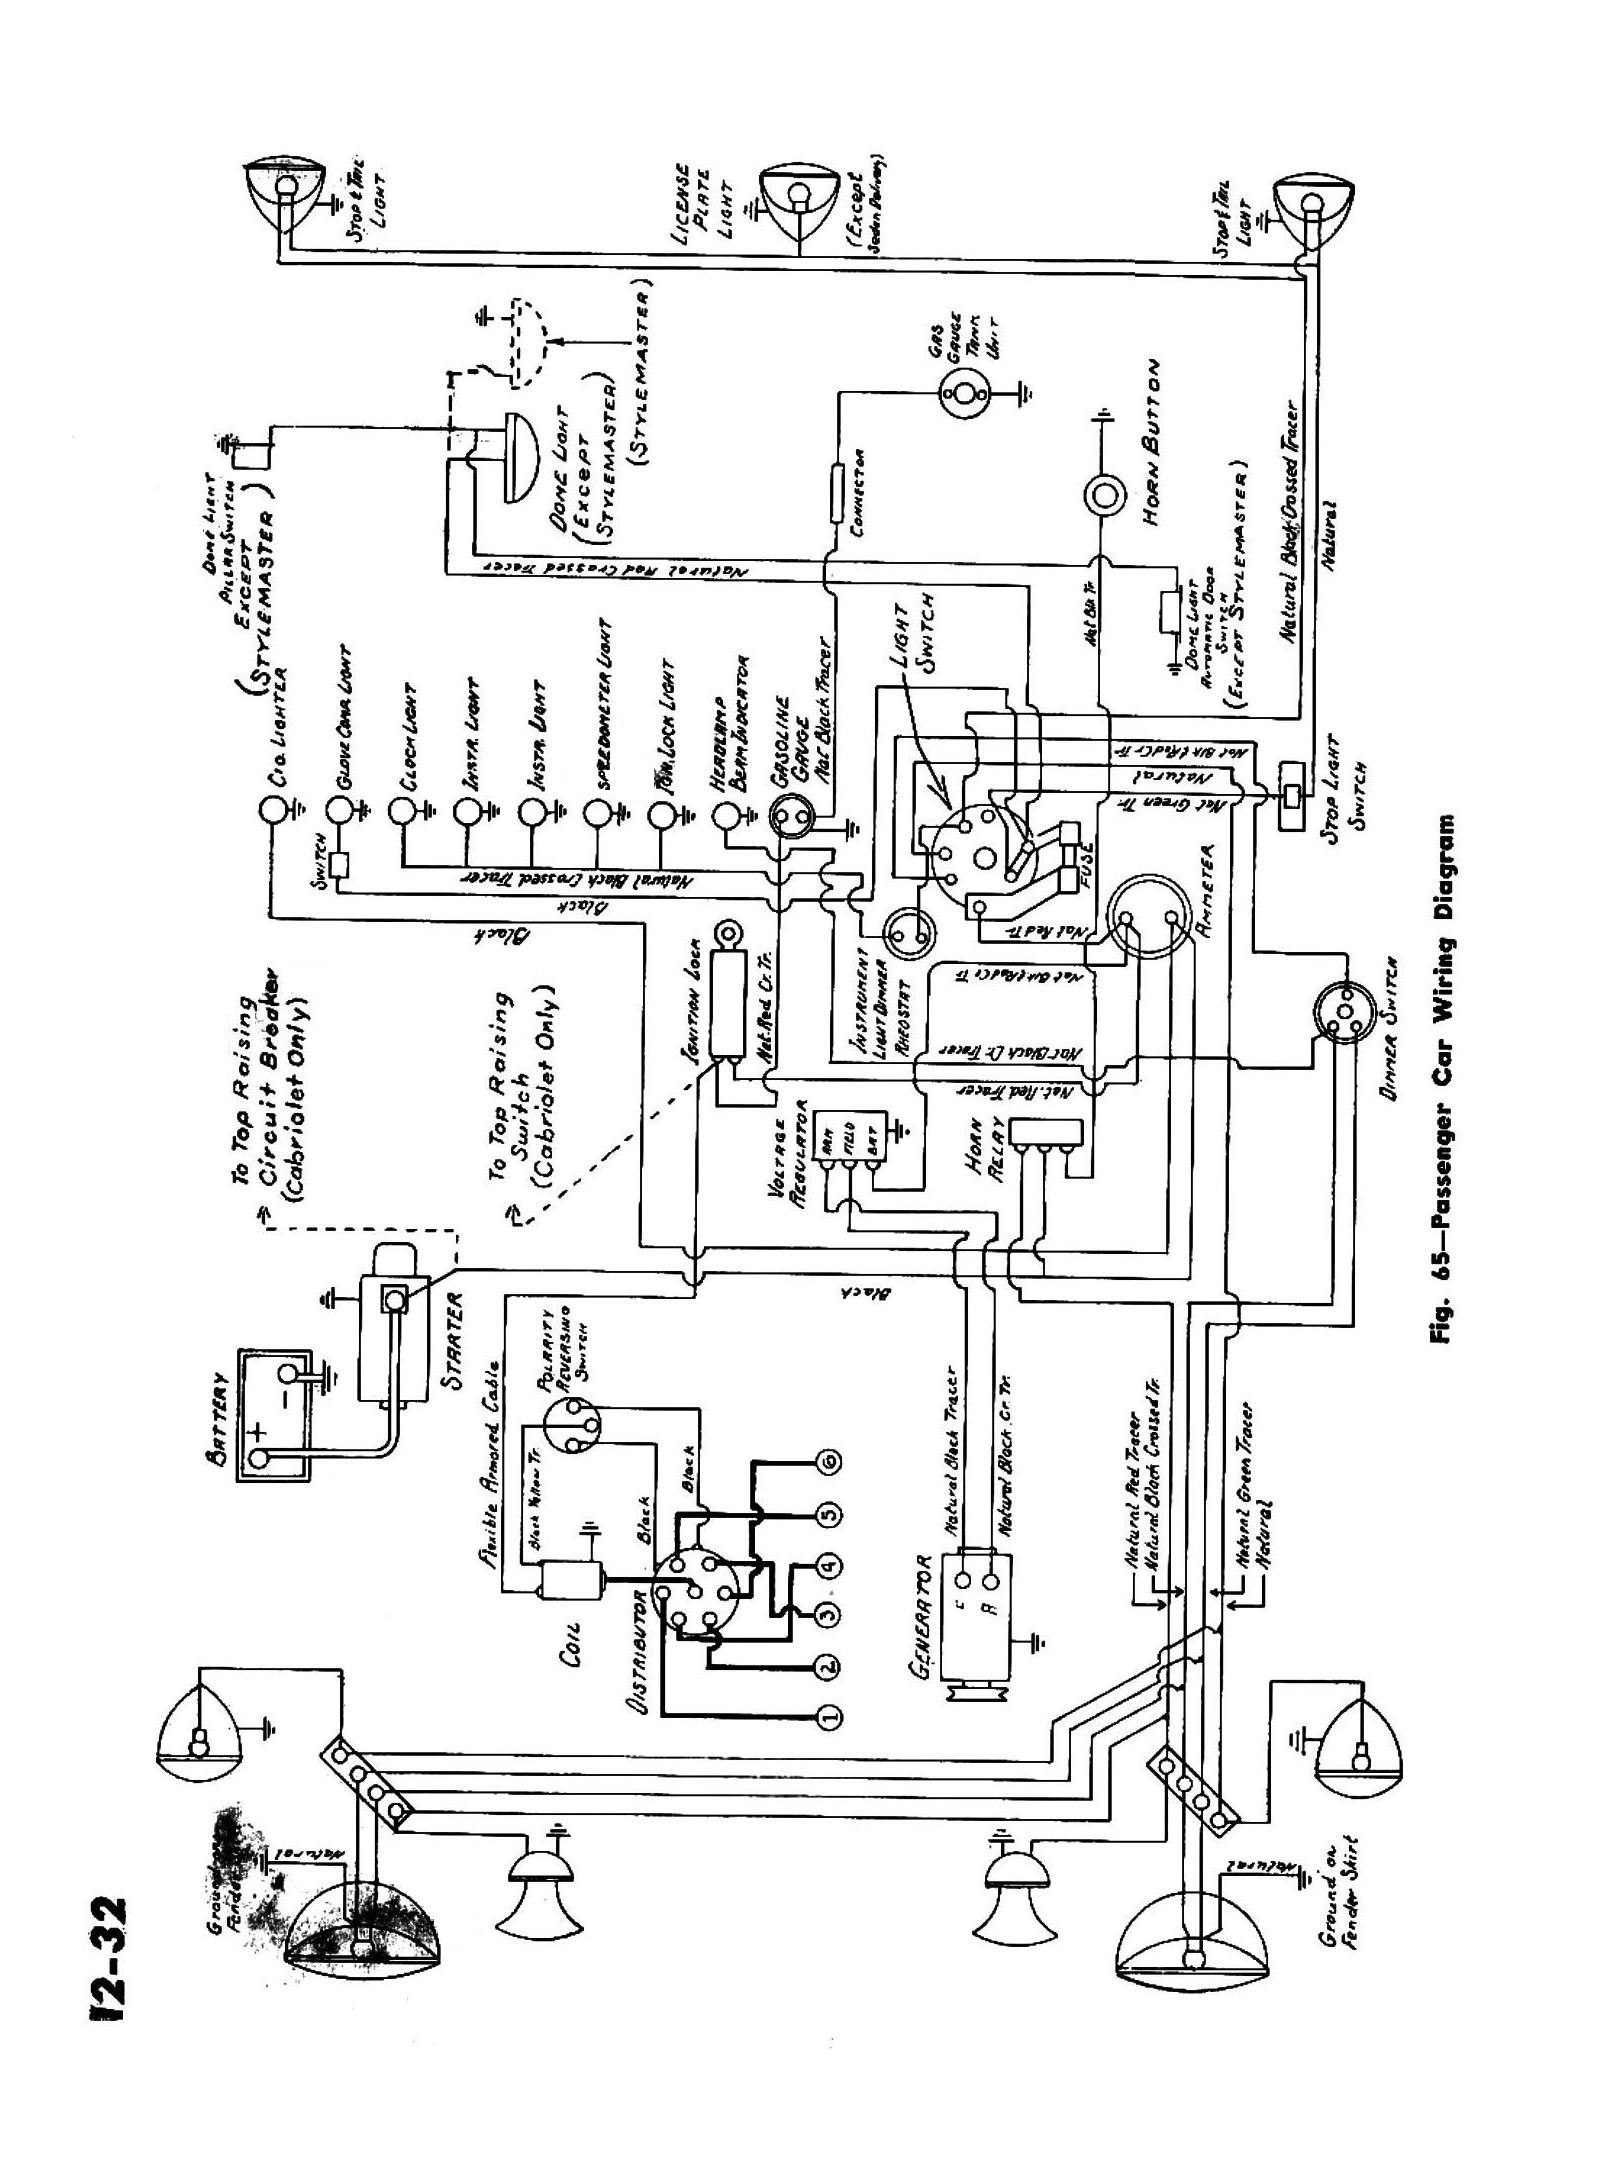 chevy ii wiring diagram color wiring library rh mckortenoord nl